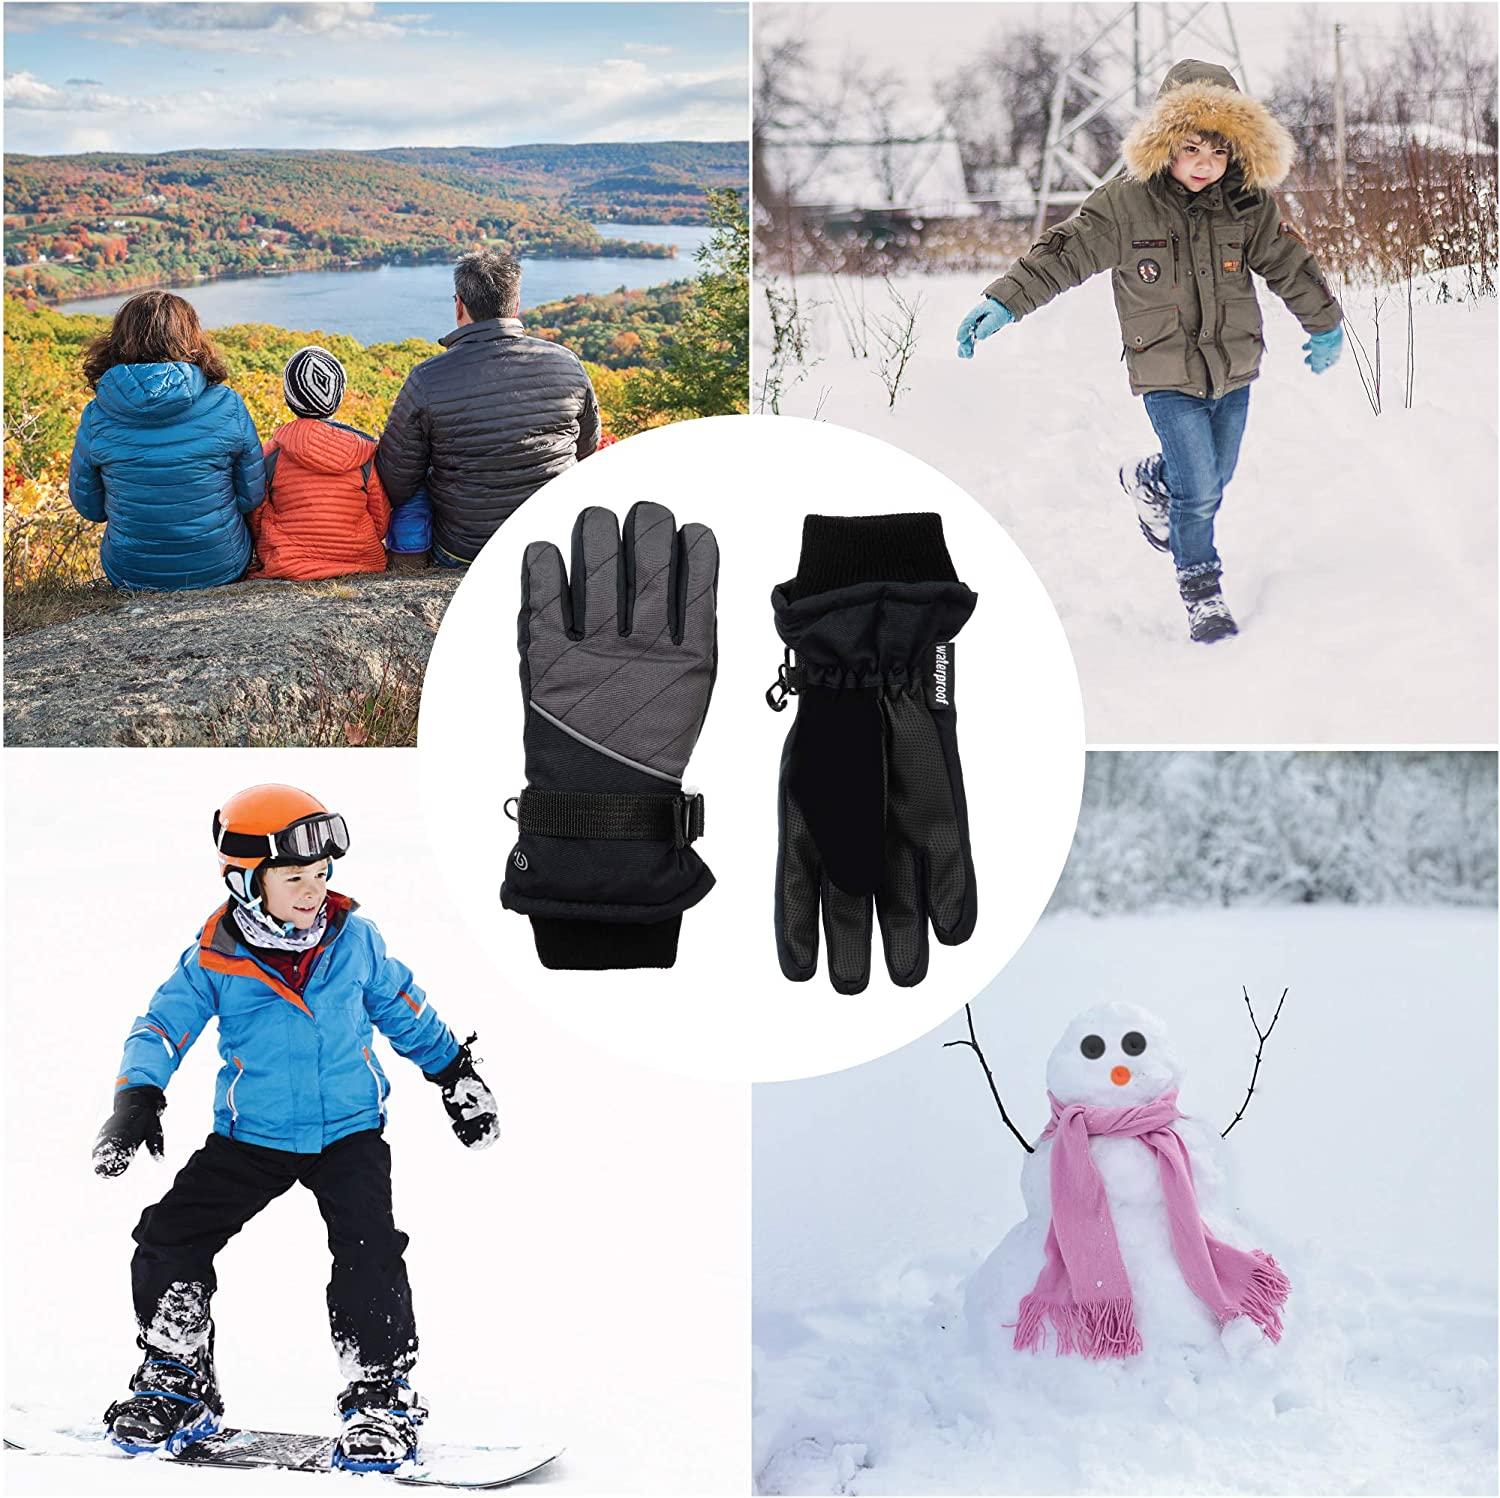 C9 Champion Kids' Waterproof Adjustable Snow and Ski Glove with Zippered Pocket, Reflective Detail and Nose Wipe: Clothing